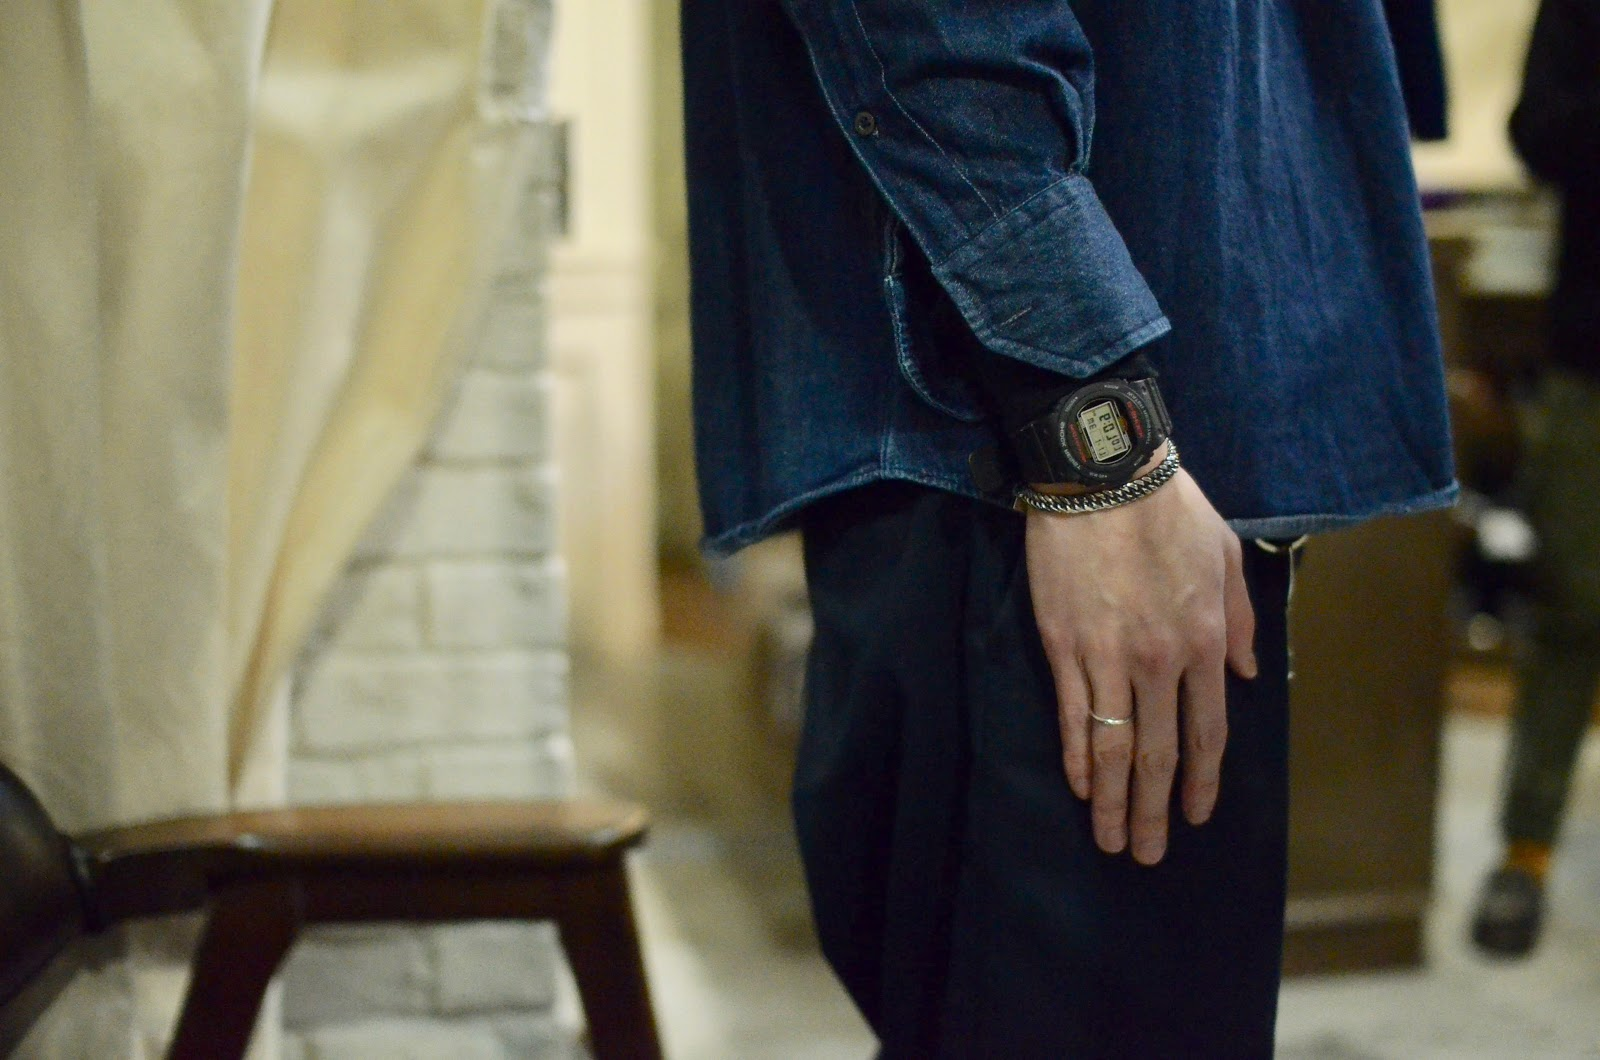 [Live Photos] G-Shock DW-5750 and vintage round style